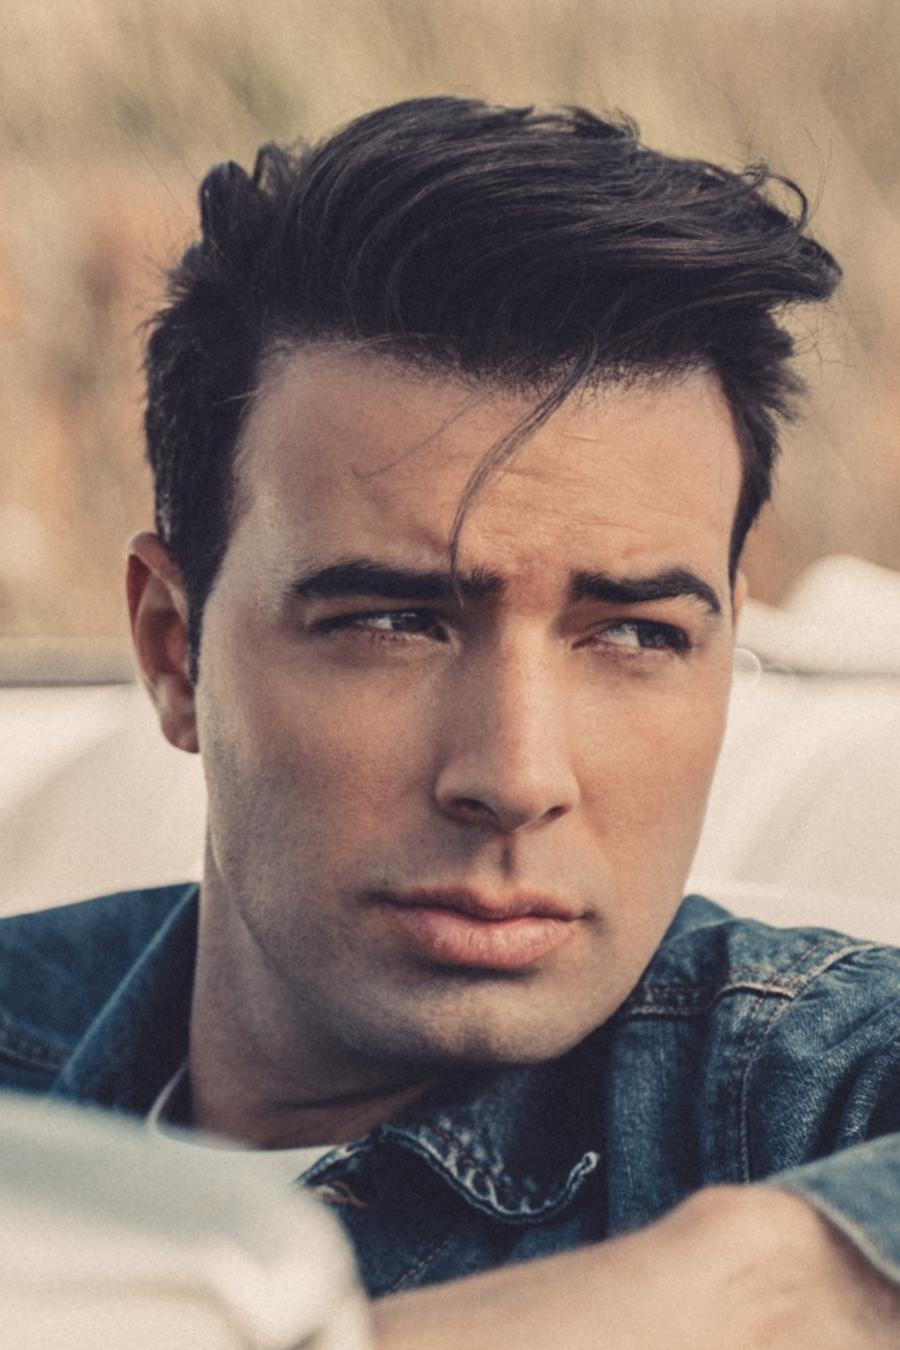 Jencarlos Canela returns as Jen for 2019